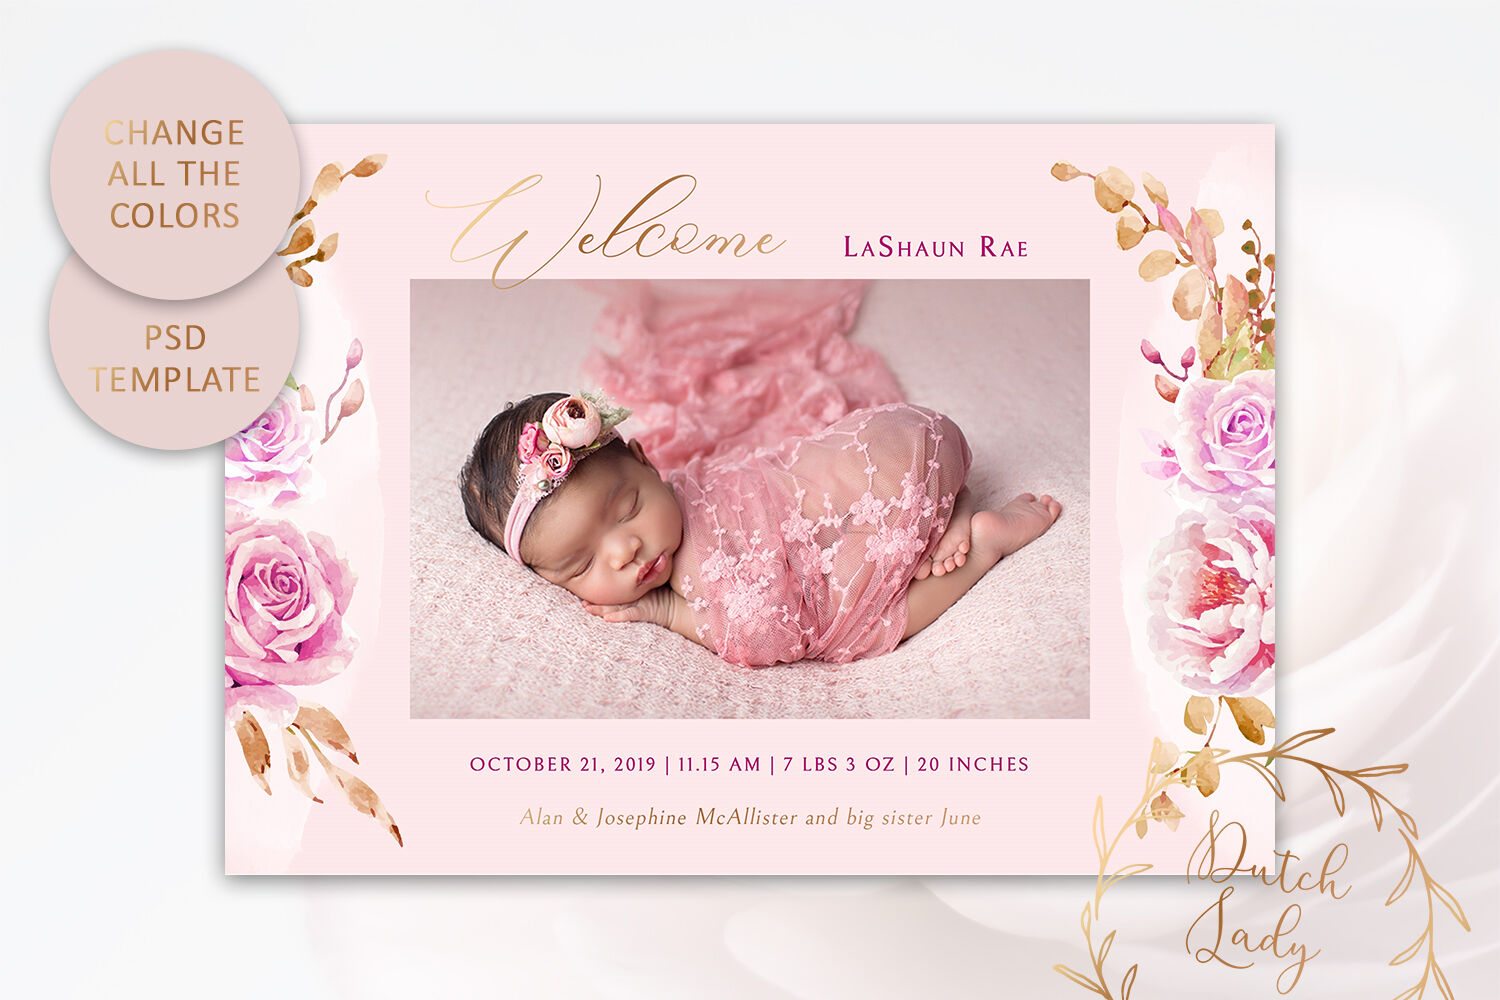 Birth Announcement Card Template 9 By The Dutch Lady Designs